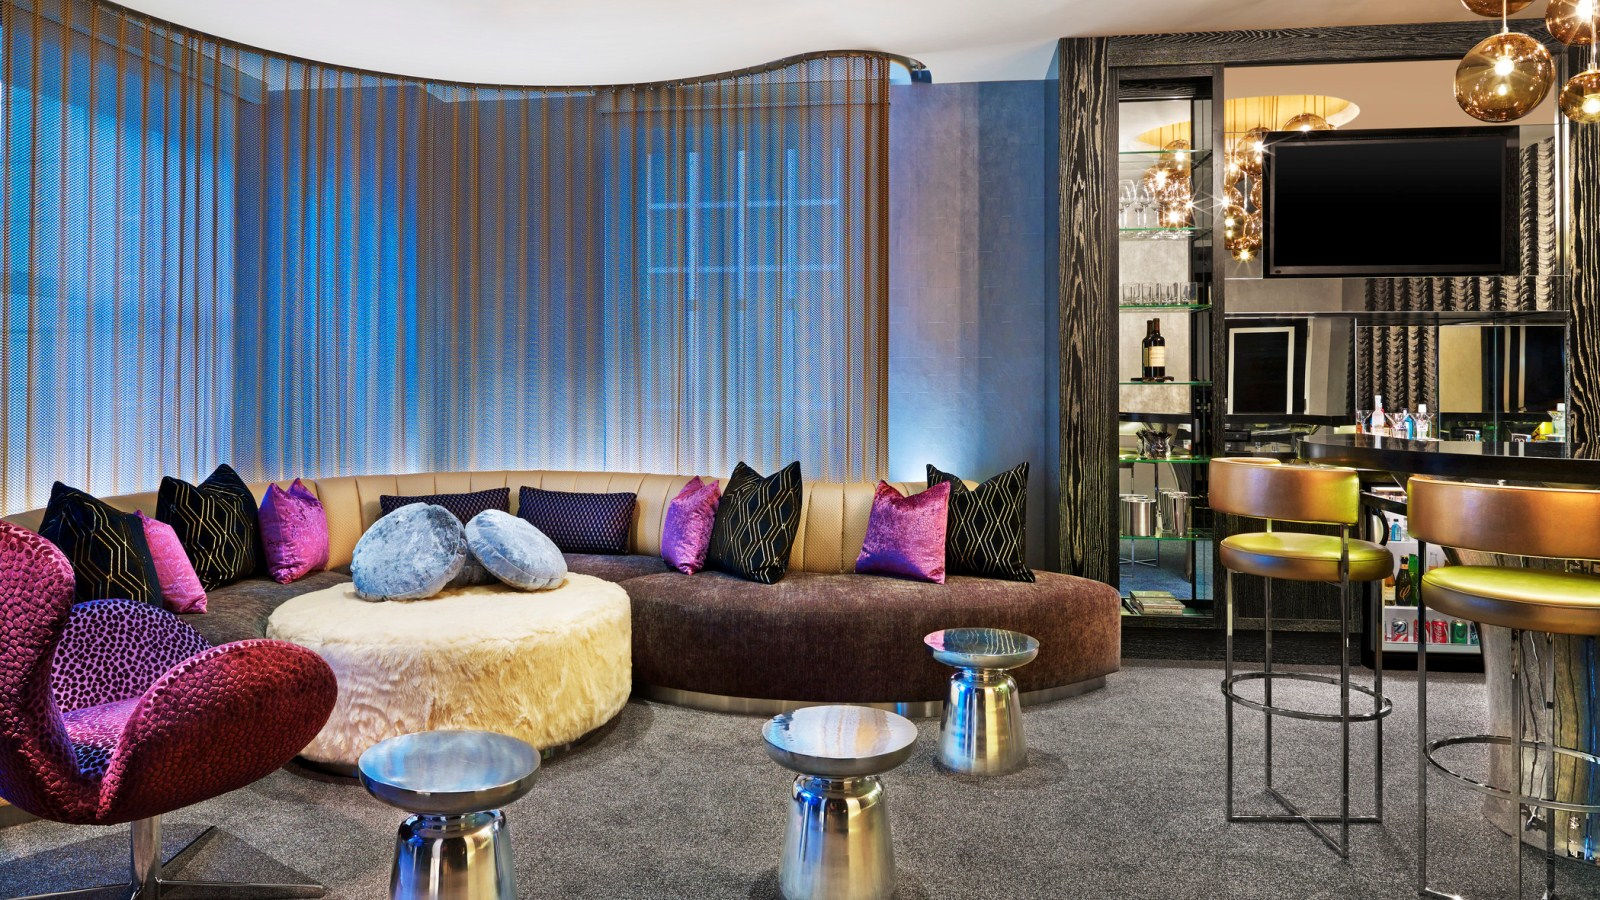 Downtown Chicago Hotel Rooms - Extreme WOW Suite